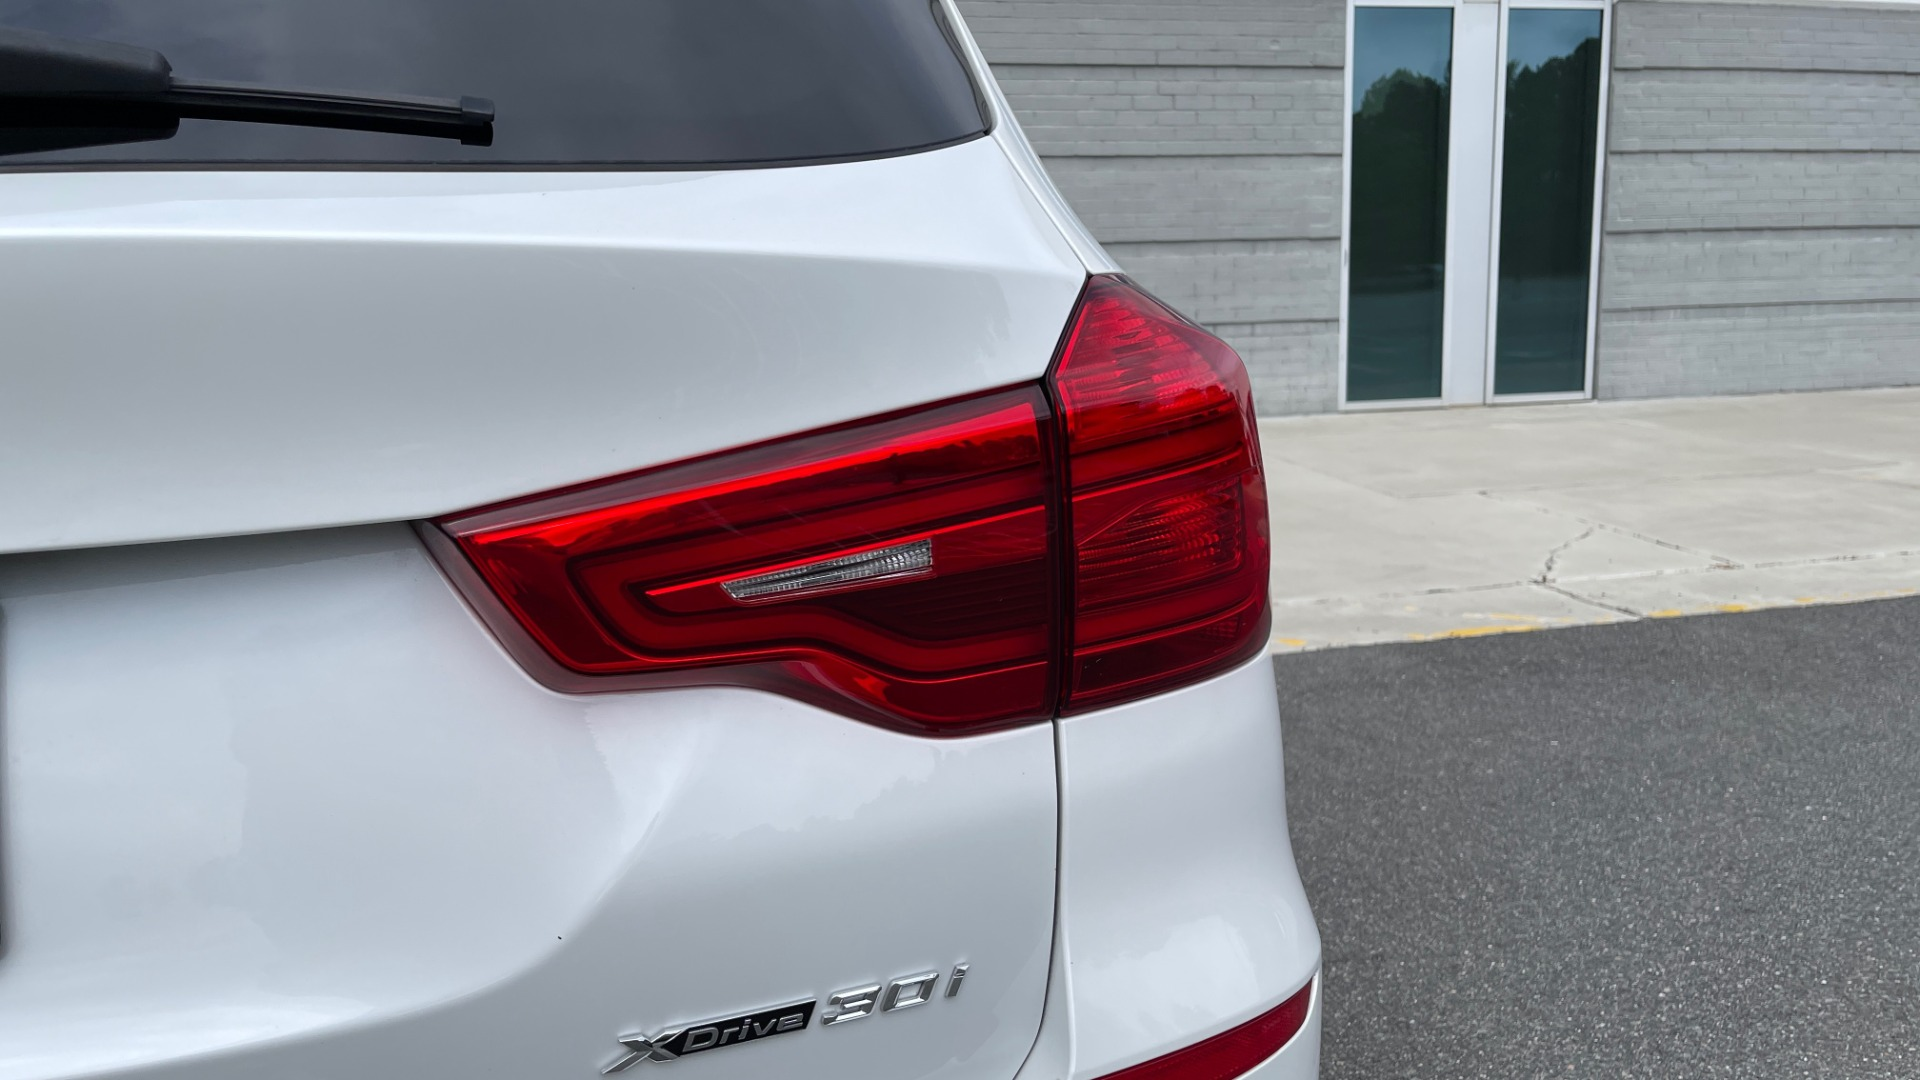 Used 2018 BMW X3 XDRIVE30I / NAV / PANO-ROOF / HTD STS / PARK DIST CNTRL / REARVIEW for sale $38,995 at Formula Imports in Charlotte NC 28227 24